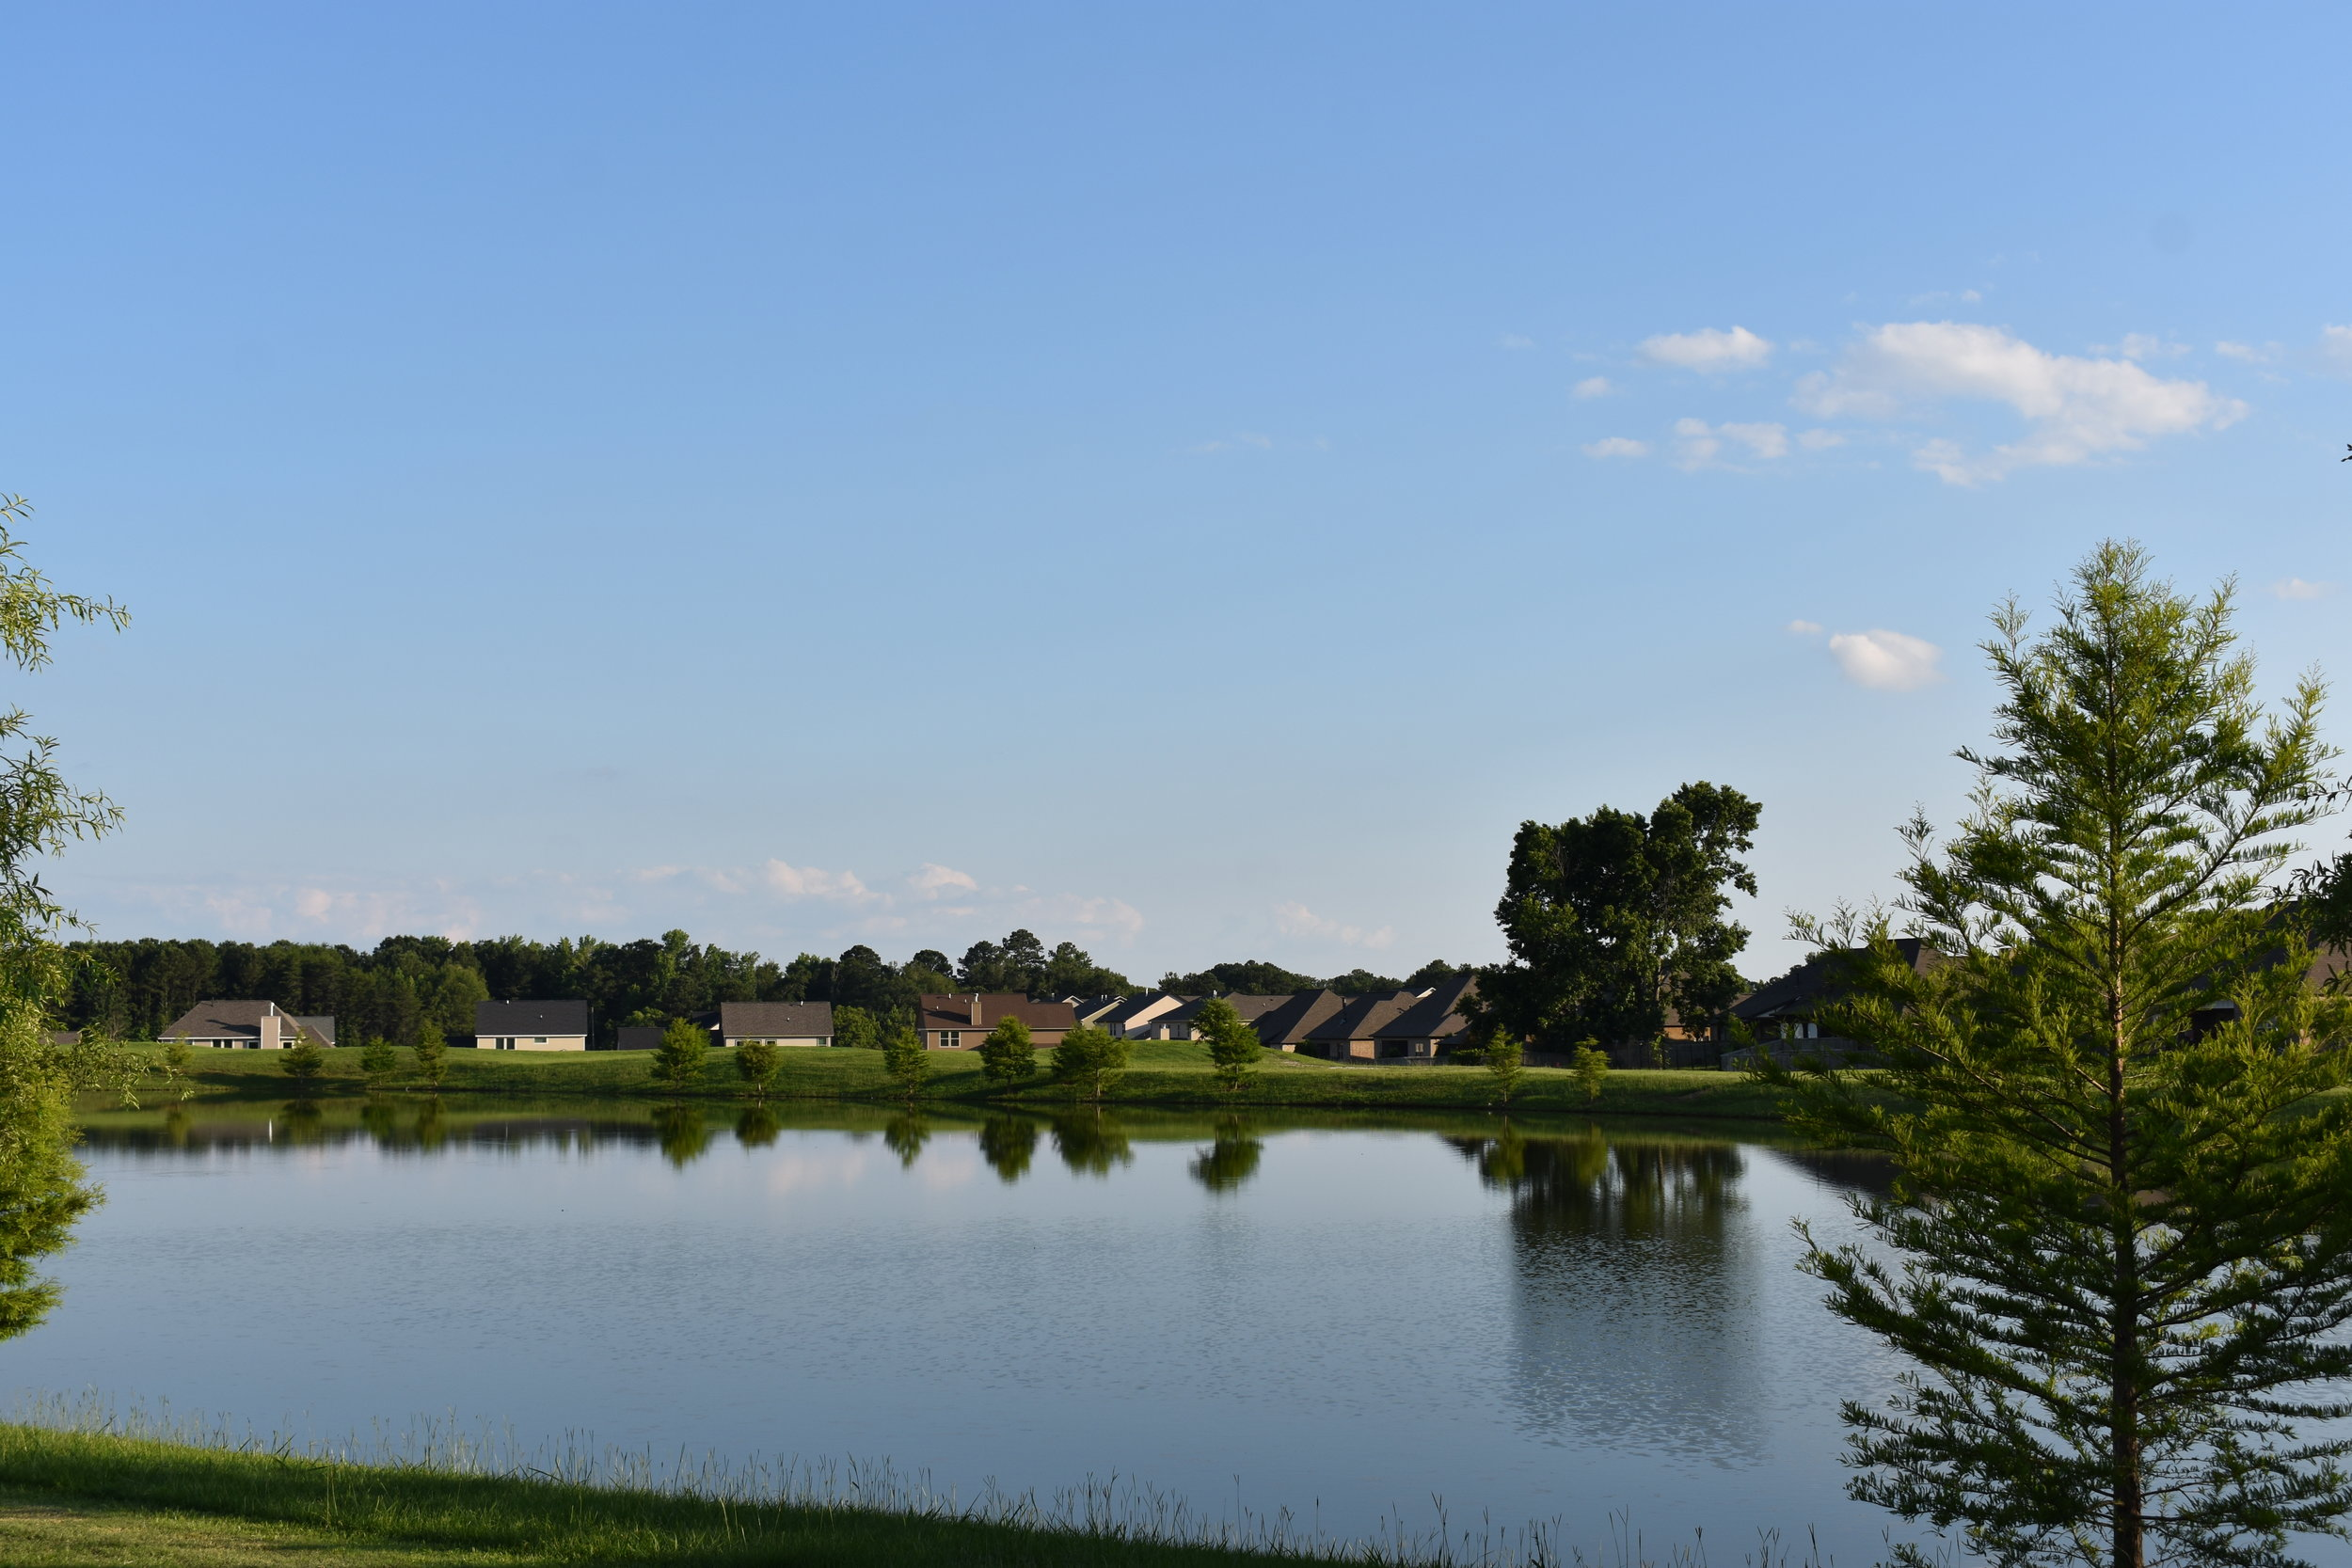 Mimms Trail Pond - Enjoy a stroll around the pond, an afternoon picnic or just a day enjoying the views.